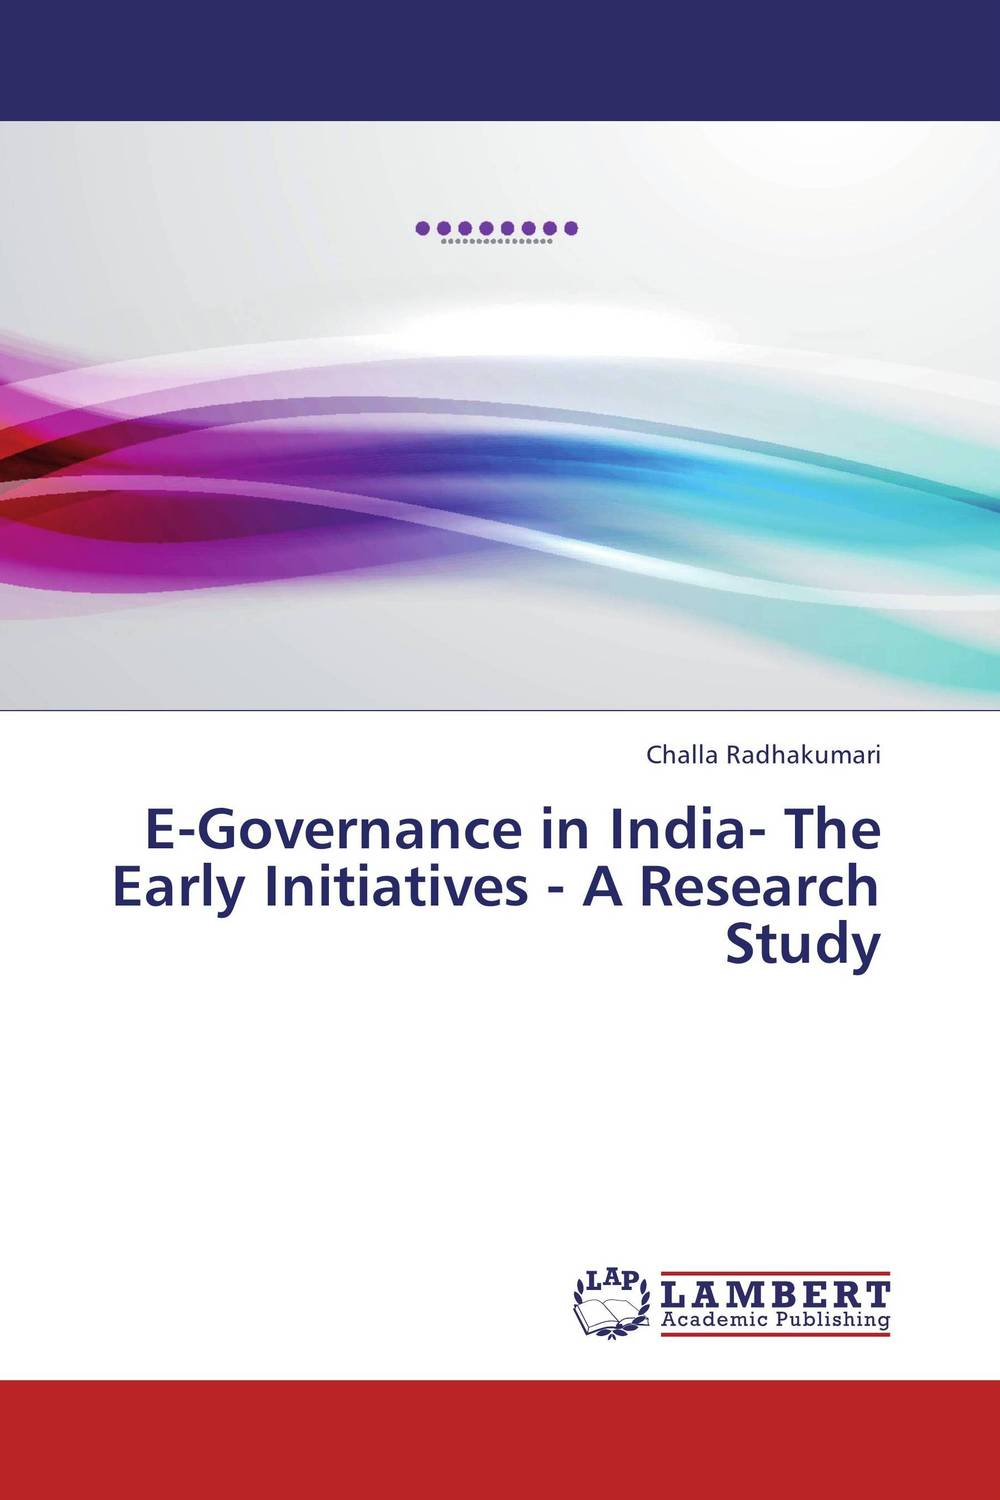 E-Governance in India- The Early Initiatives - A Research Study майка классическая printio sadhus of india